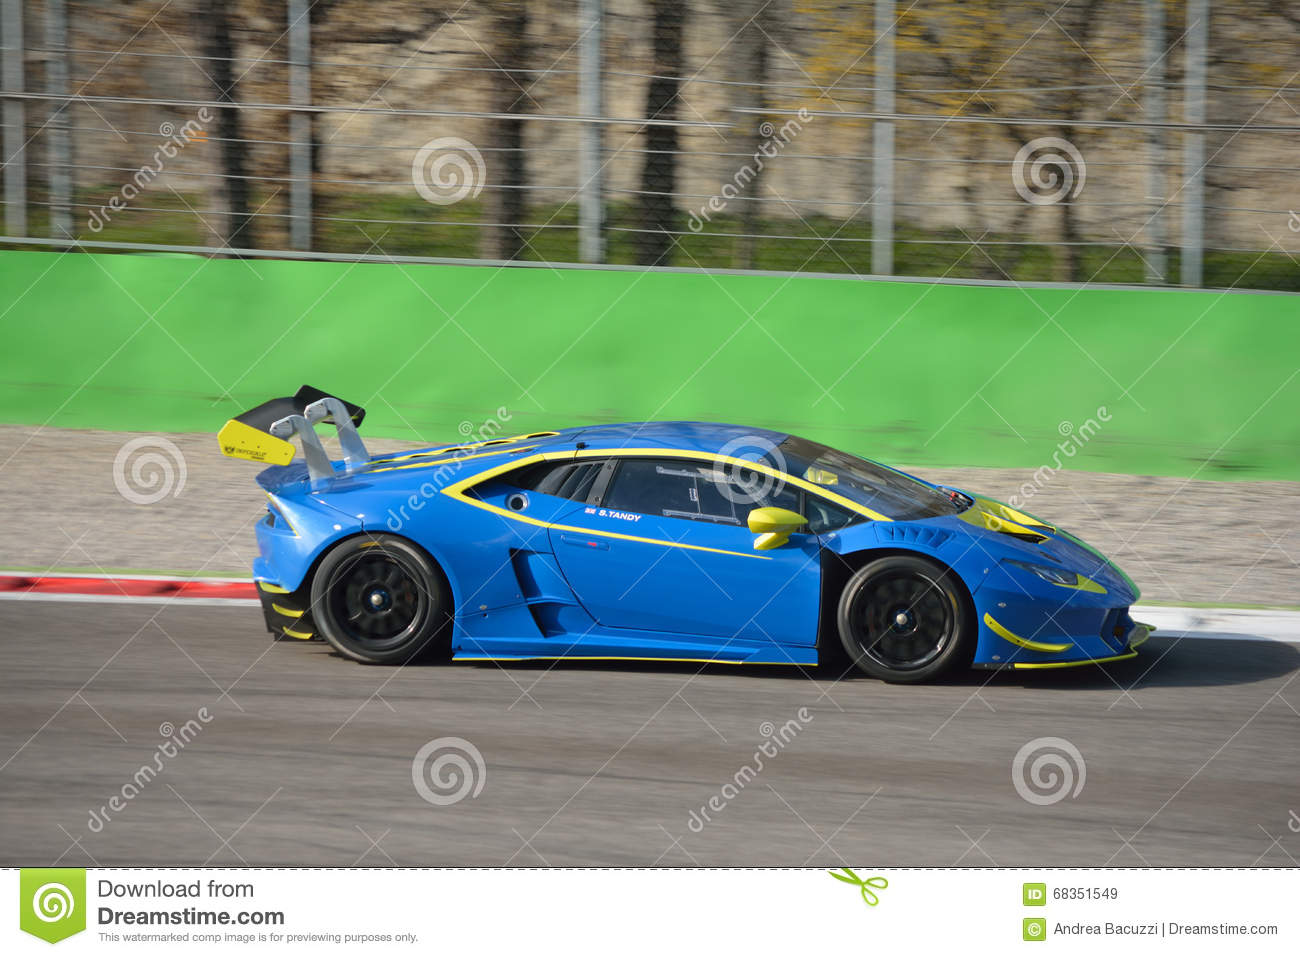 lamborghini hurac n super trofeo 2016 at monza editorial stock image image 68351549. Black Bedroom Furniture Sets. Home Design Ideas